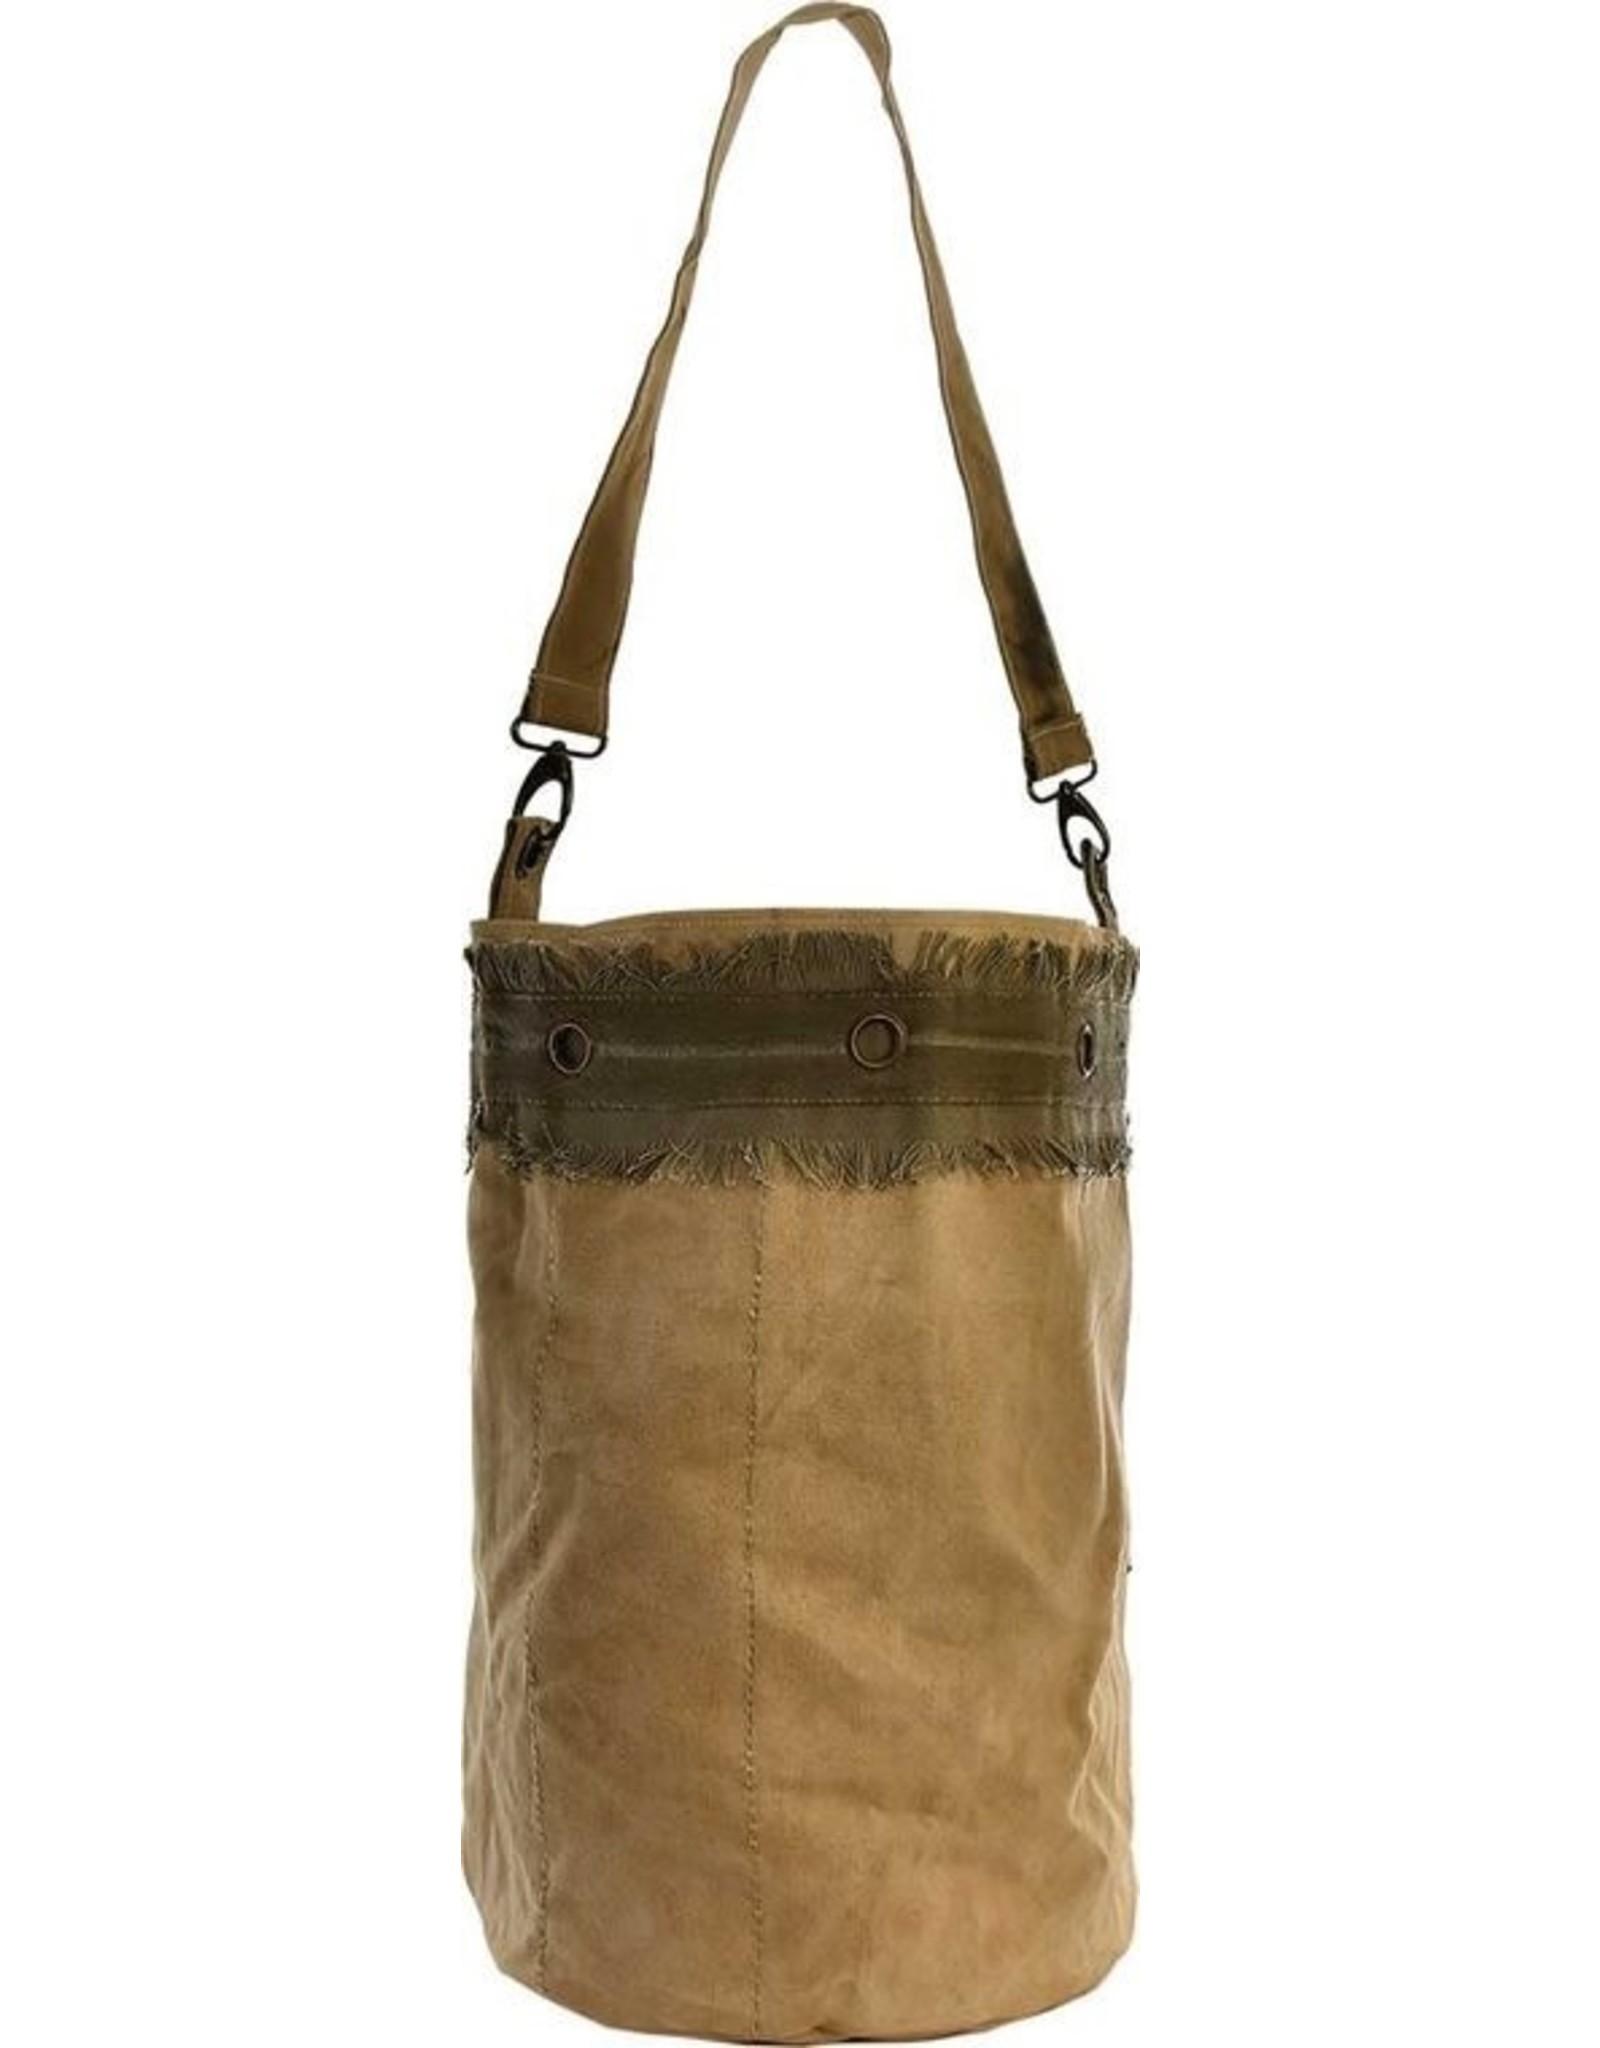 The Florist & The Merchant Recycled Military Tent Bucket Bag